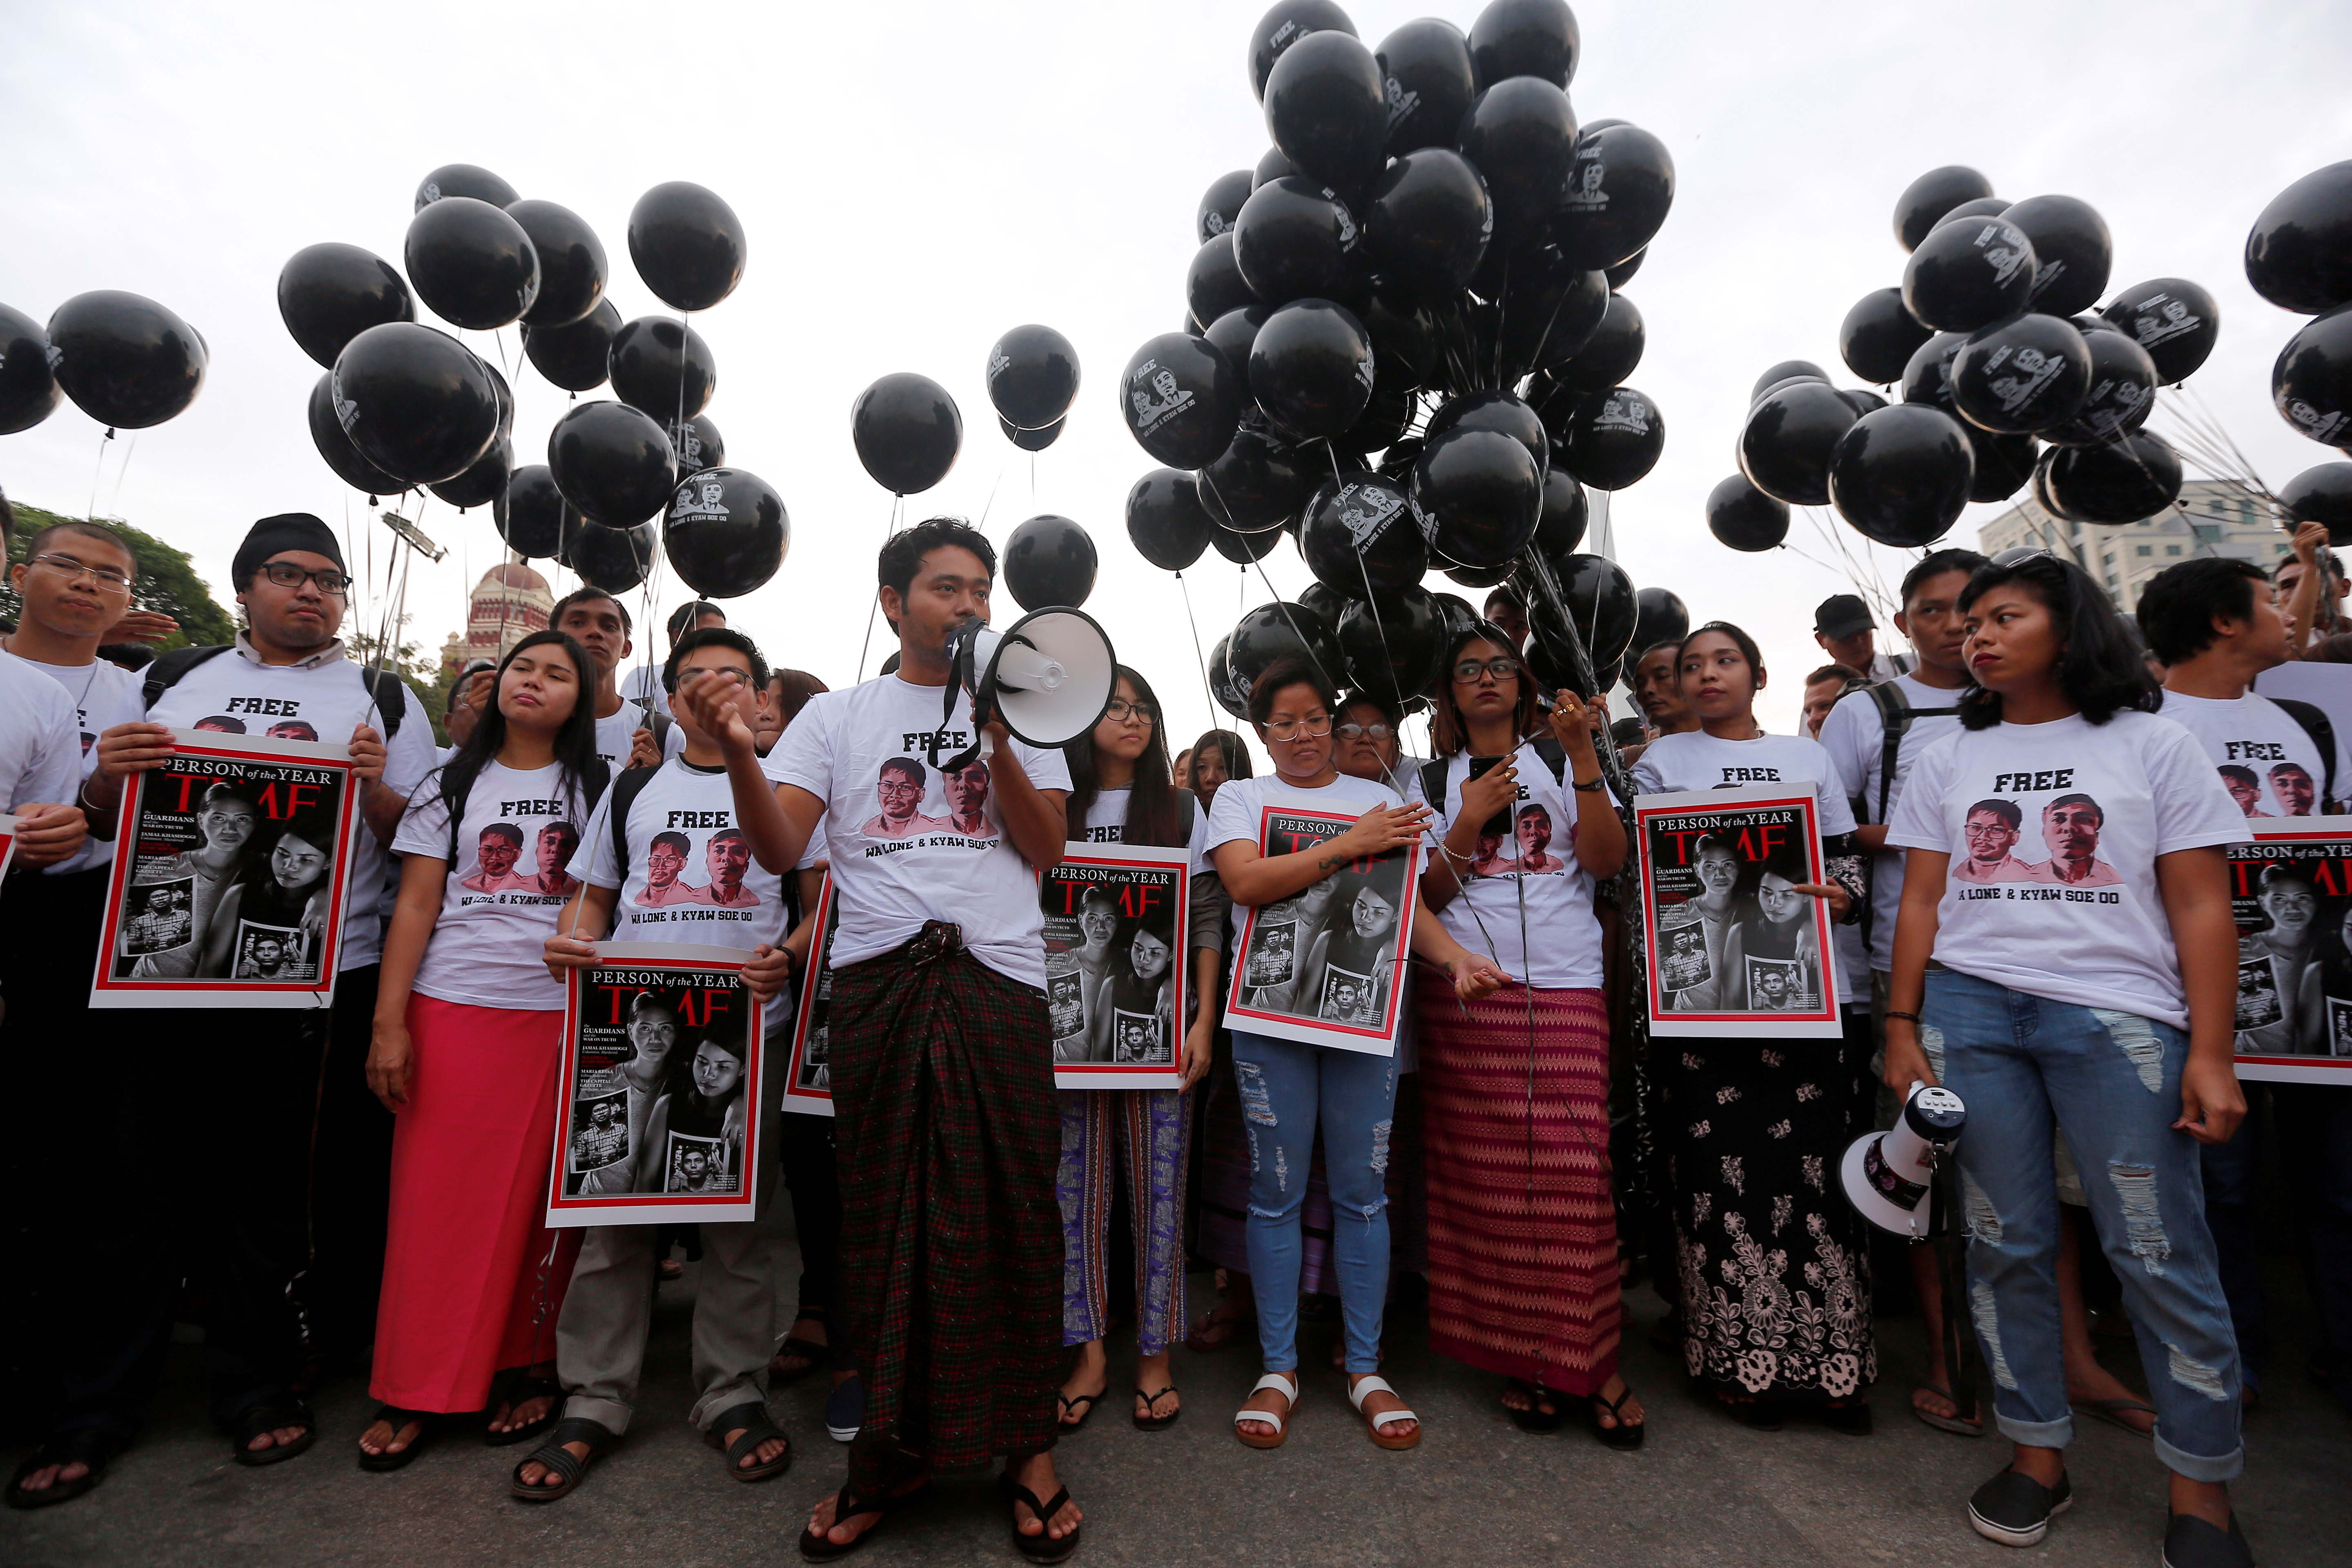 Activists gather at a rally, calling for the release of imprisoned Reuters journalists Wa Lone and Kyaw Soe Oo, one year after they were arrested, in Yangon, Myanmar, Dec.12, 2018.